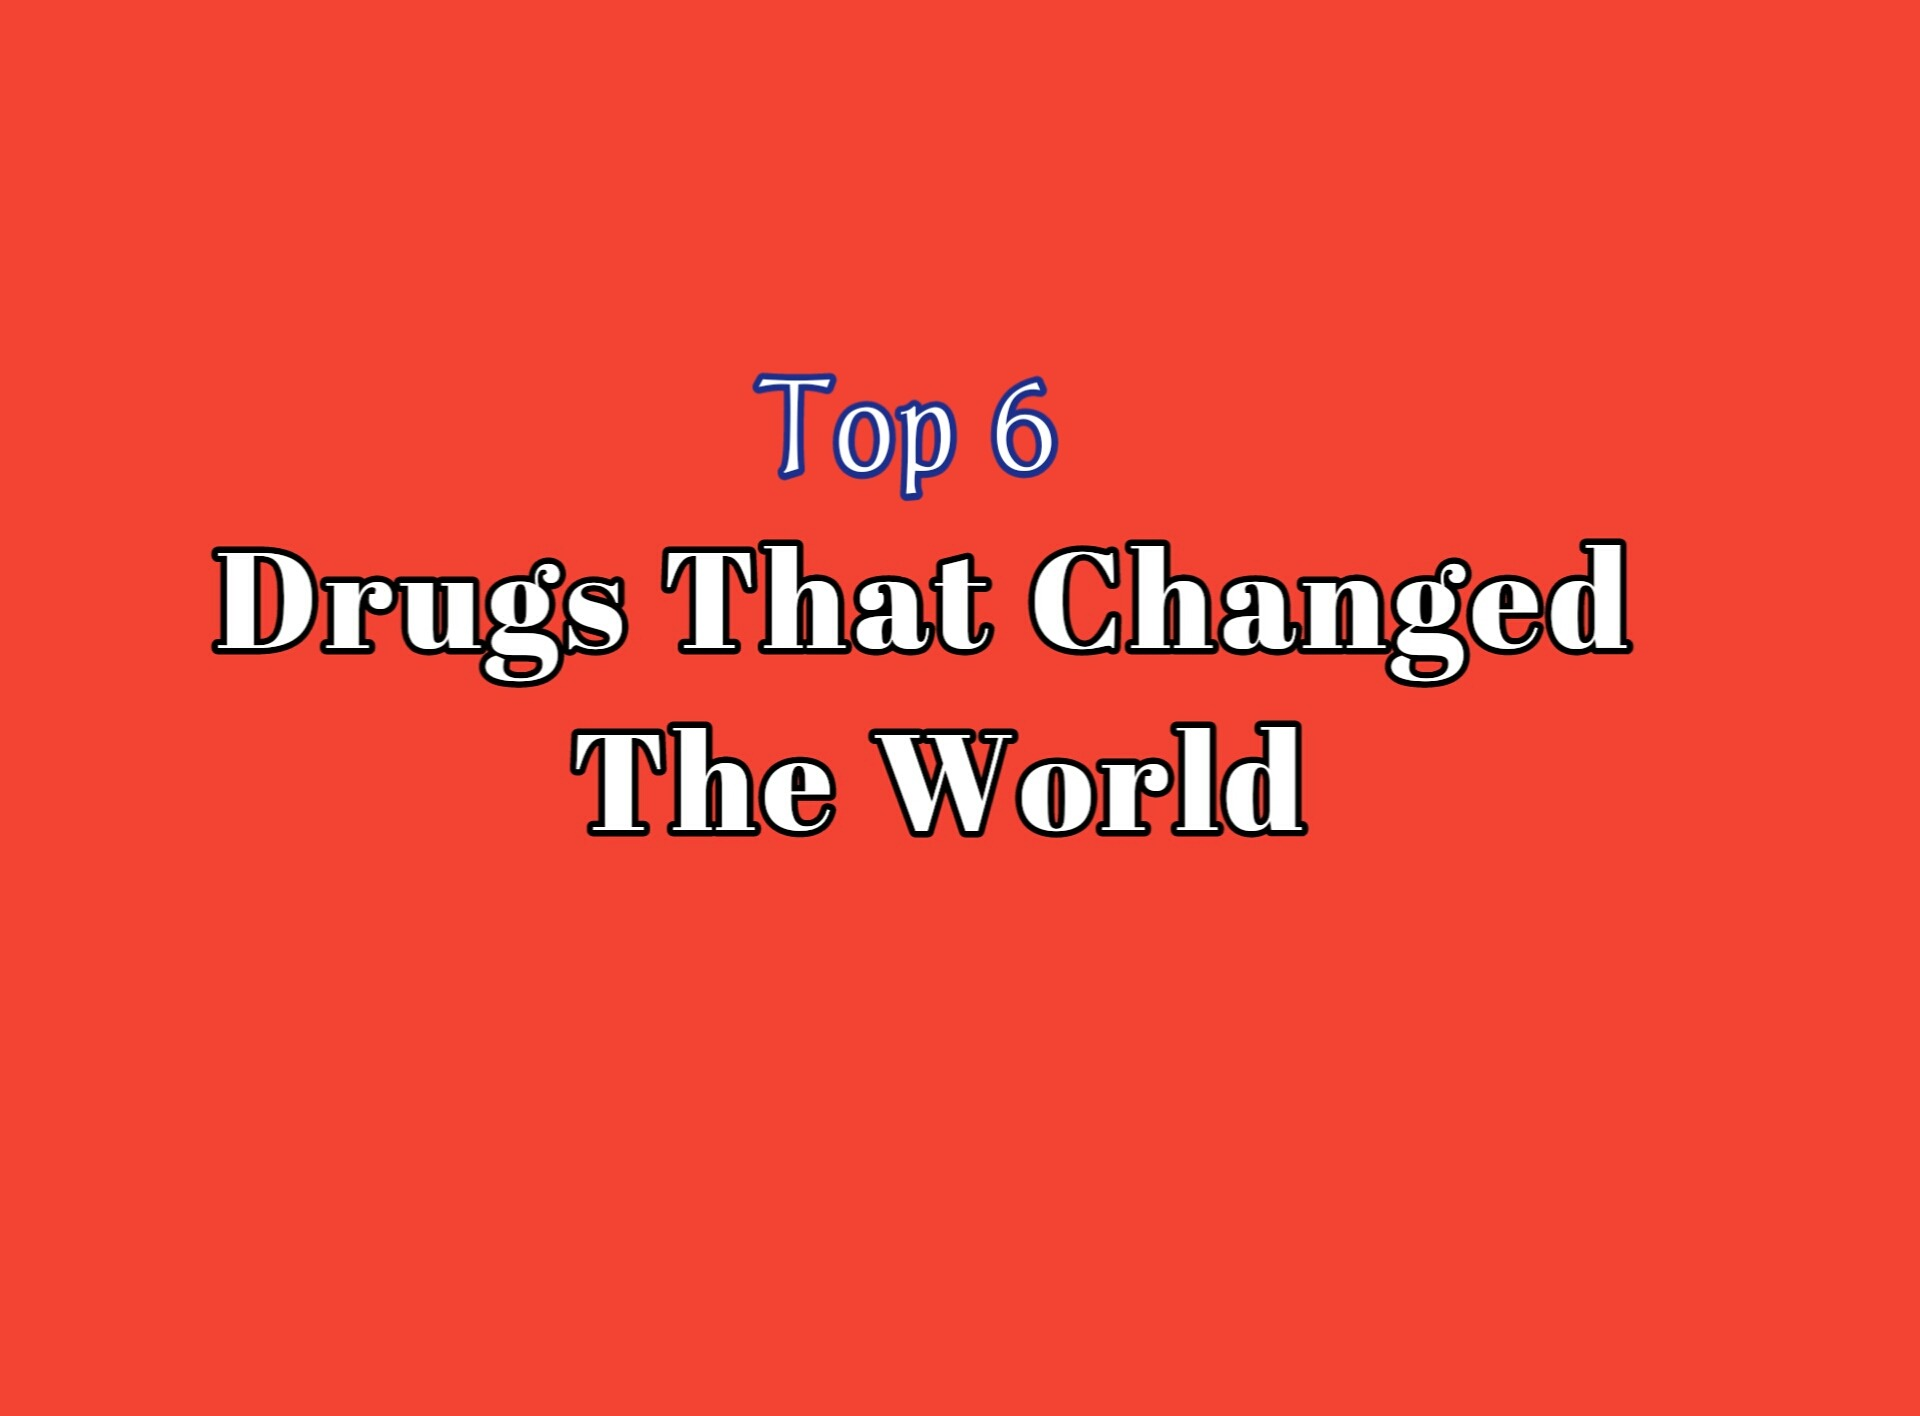 Top 6 drugs that changed the world